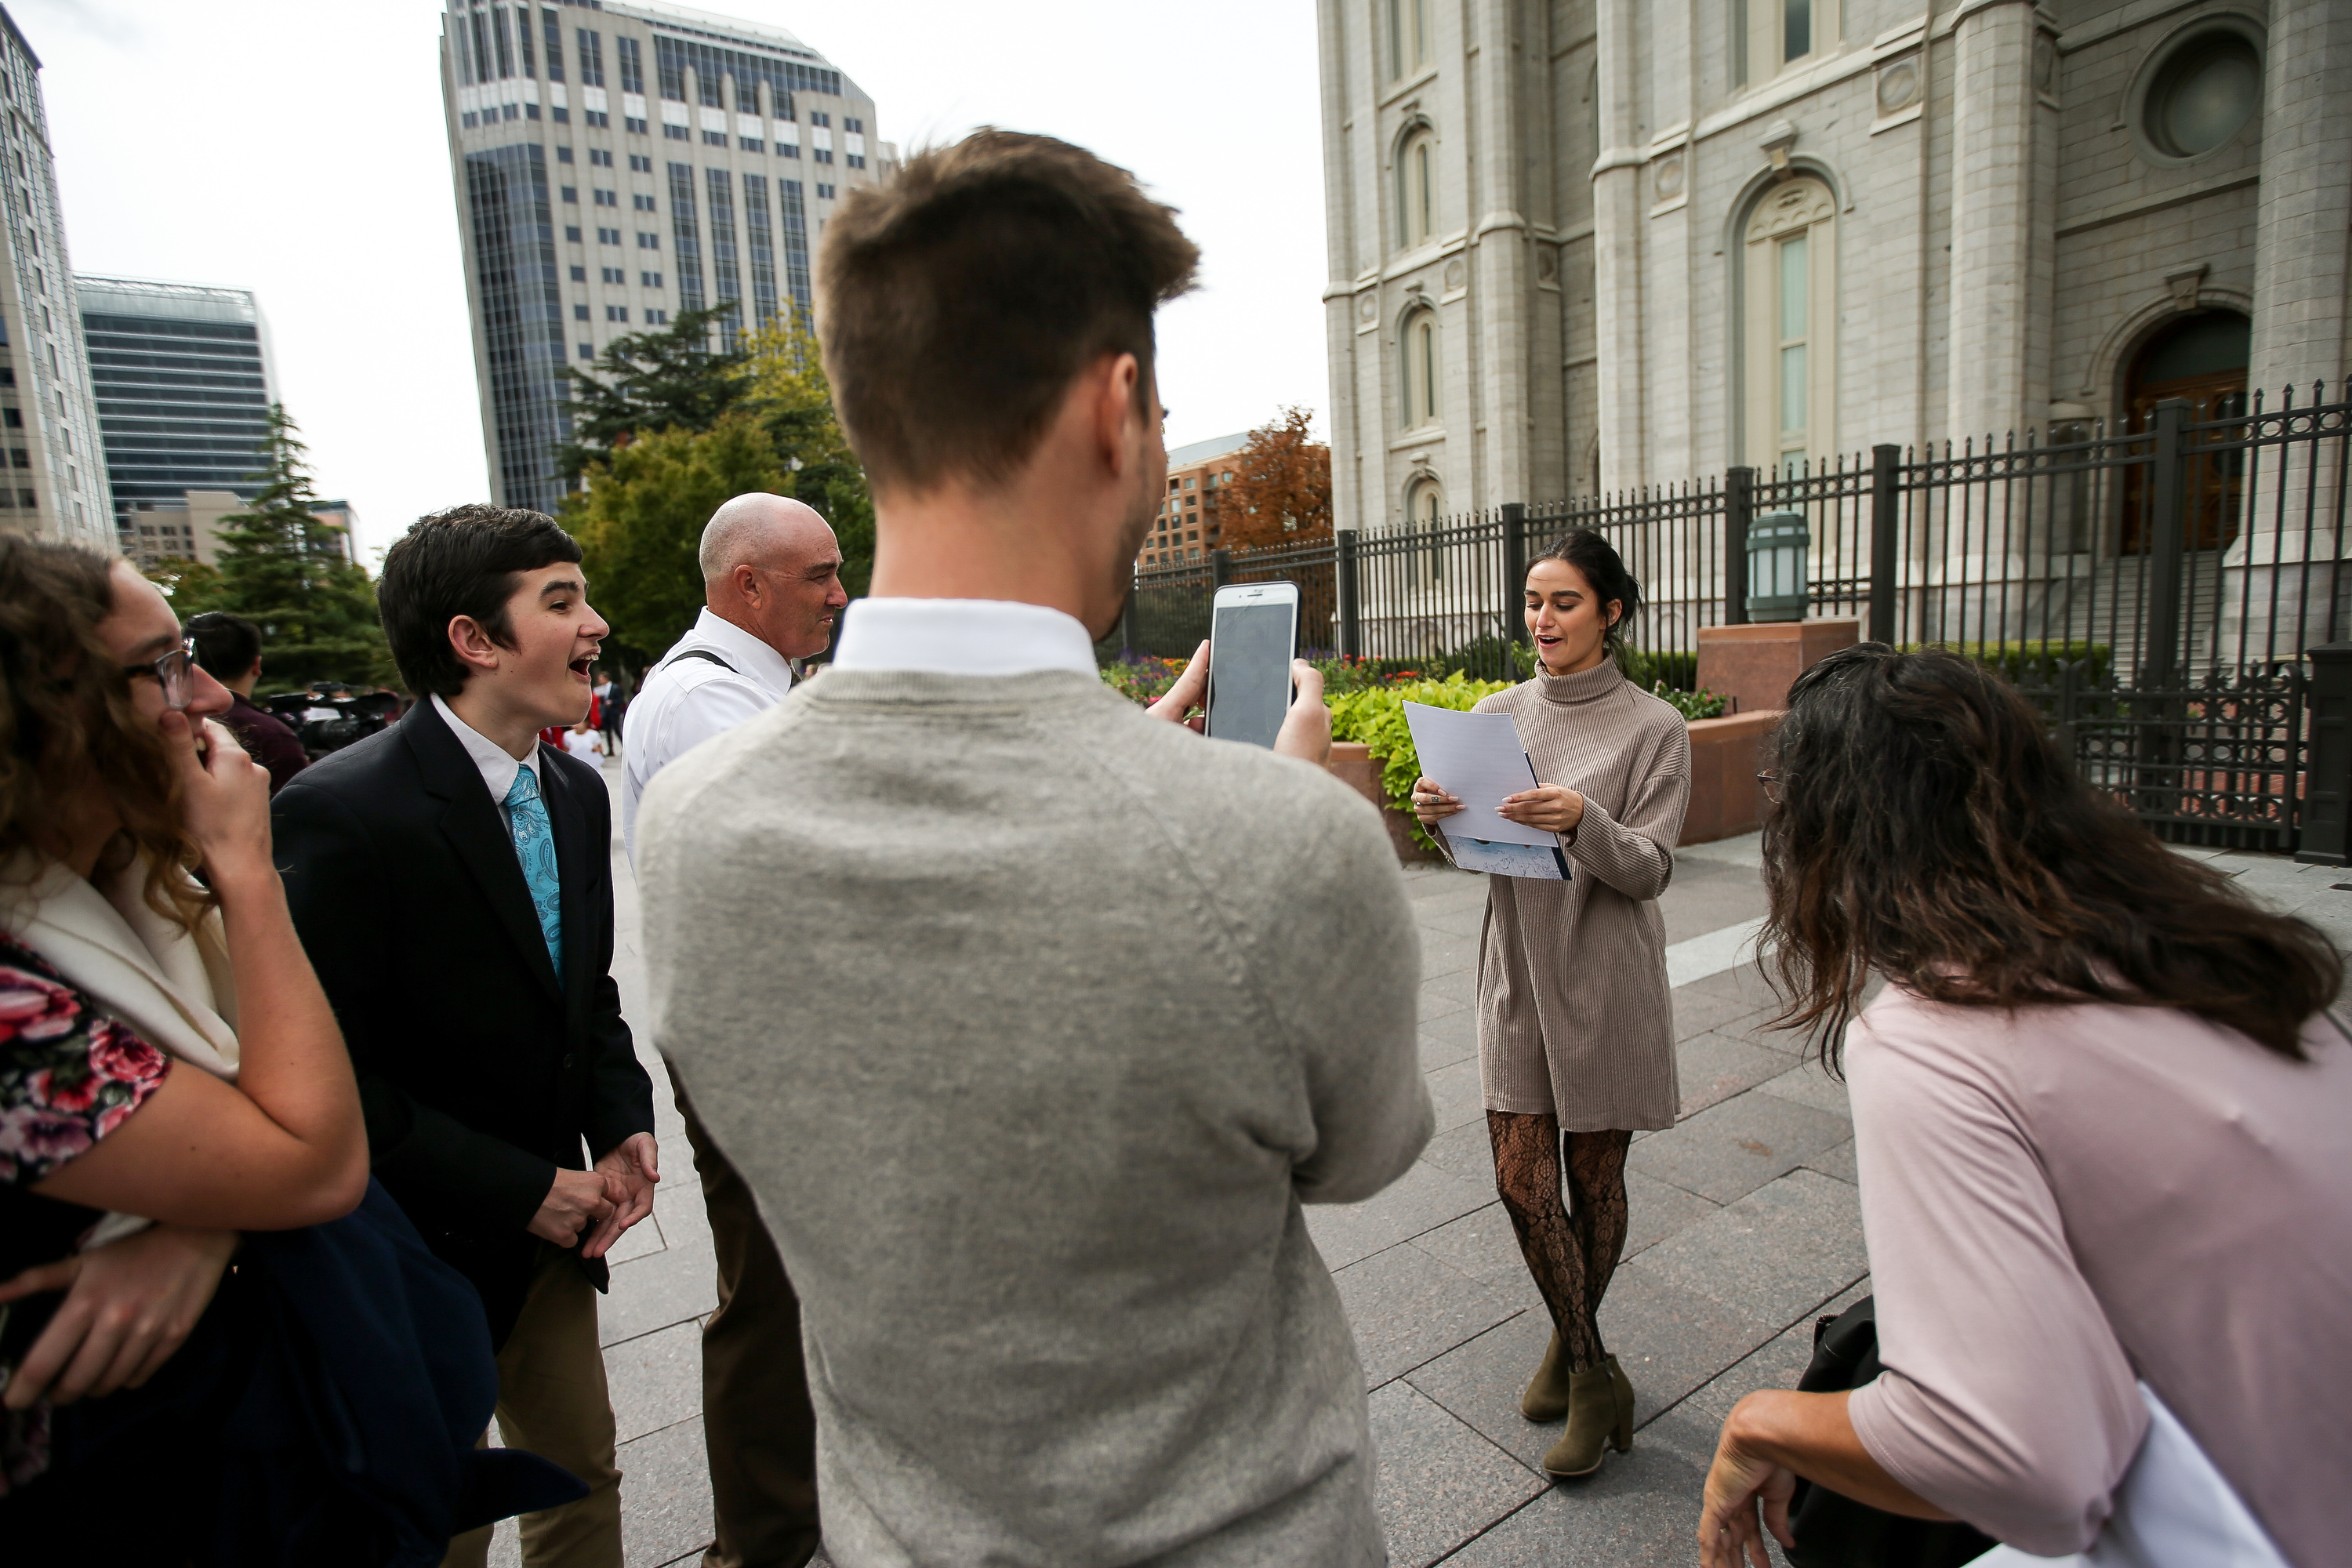 Teagan Parham, 19, of Redding, Calif., opens her mission call, which called her to serve in Chile, surrounded by family members and her boyfriend outside of Temple Square after the Saturday morning session of the 188th Semiannual General Conference of The Church of Jesus Christ of Latter-day Saints in the Conference Center in Salt Lake City on Saturday, Oct. 6, 2018.